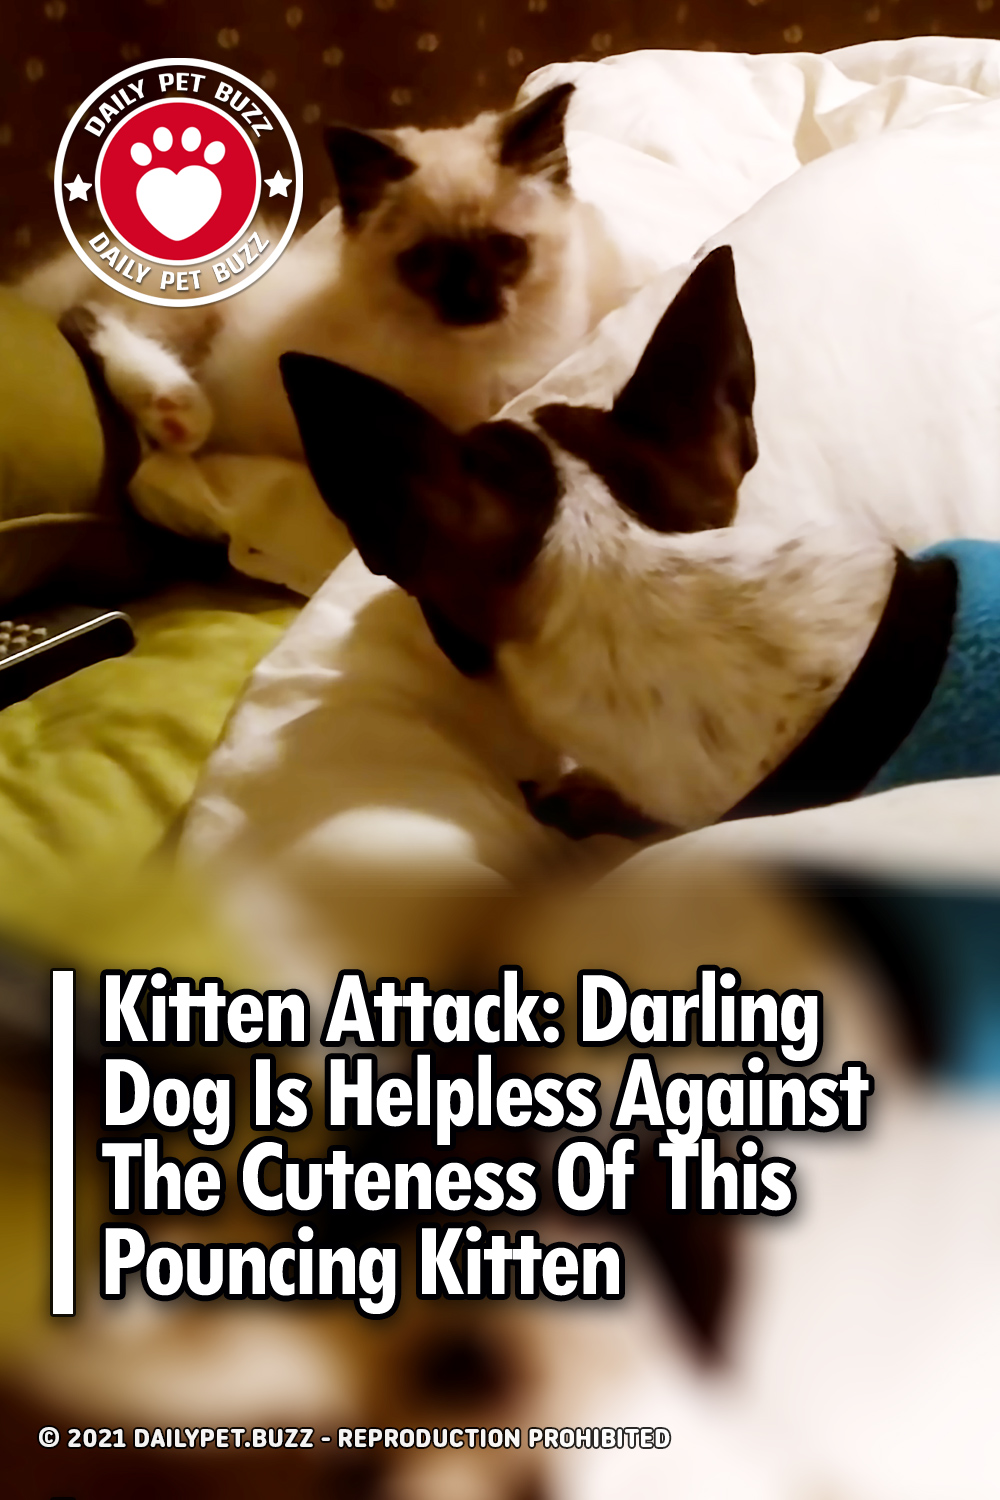 Kitten Attack: Darling Dog Is Helpless Against The Cuteness Of This Pouncing Kitten